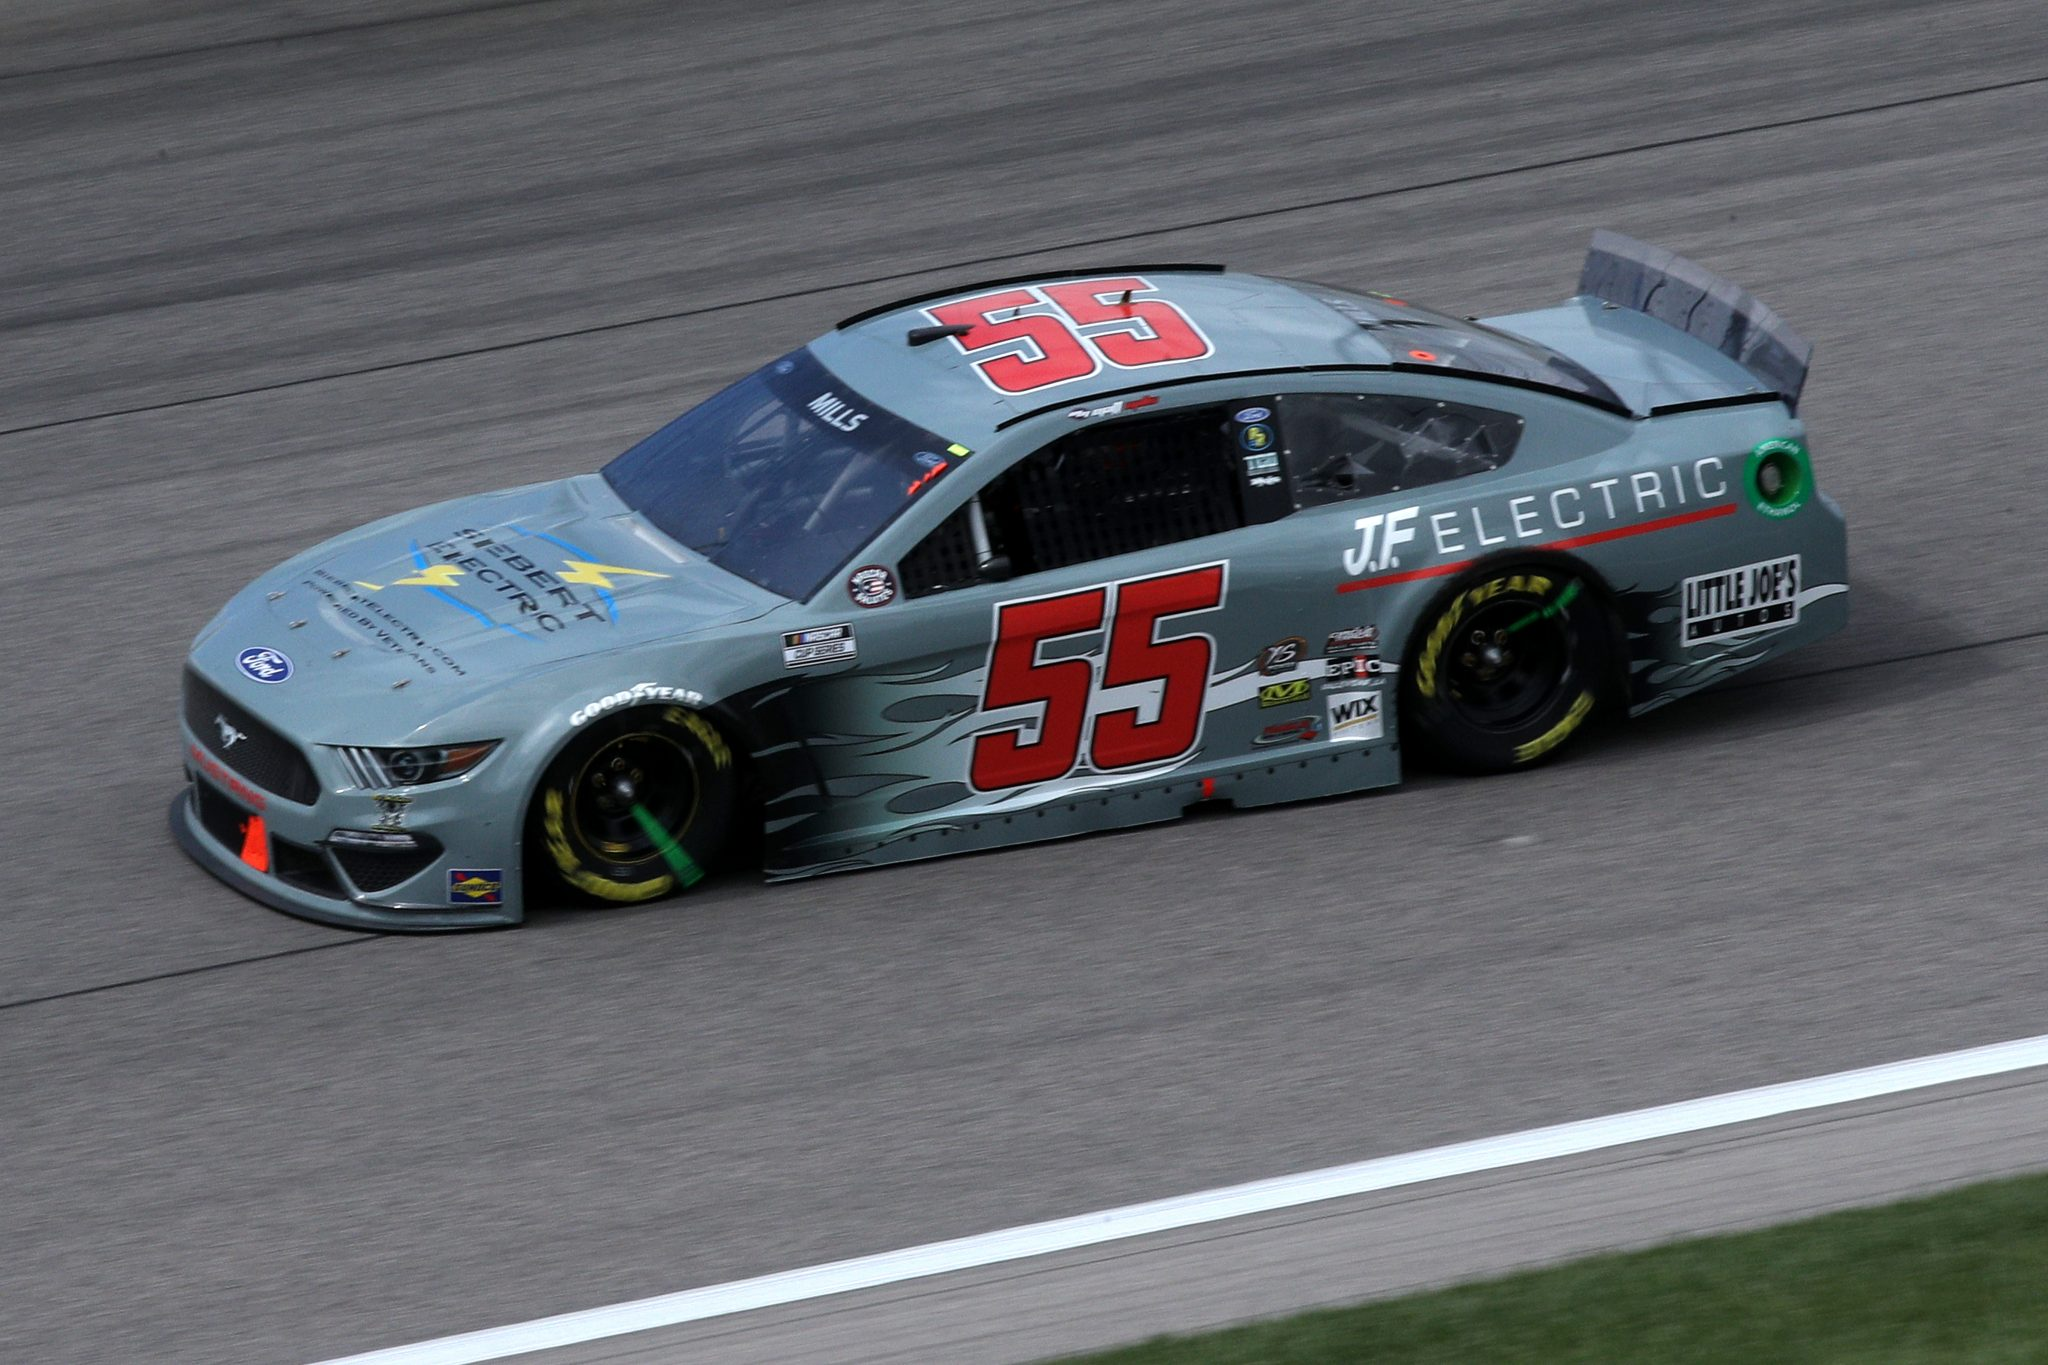 KANSAS CITY, KANSAS - MAY 02: Matt Mills, driver of the #55 Siebert Electric/J.F. Electric Ford, drives during the NASCAR Cup Series Buschy McBusch Race 400 at Kansas Speedway on May 02, 2021 in Kansas City, Kansas. (Photo by Sean Gardner/Getty Images) | Getty Images